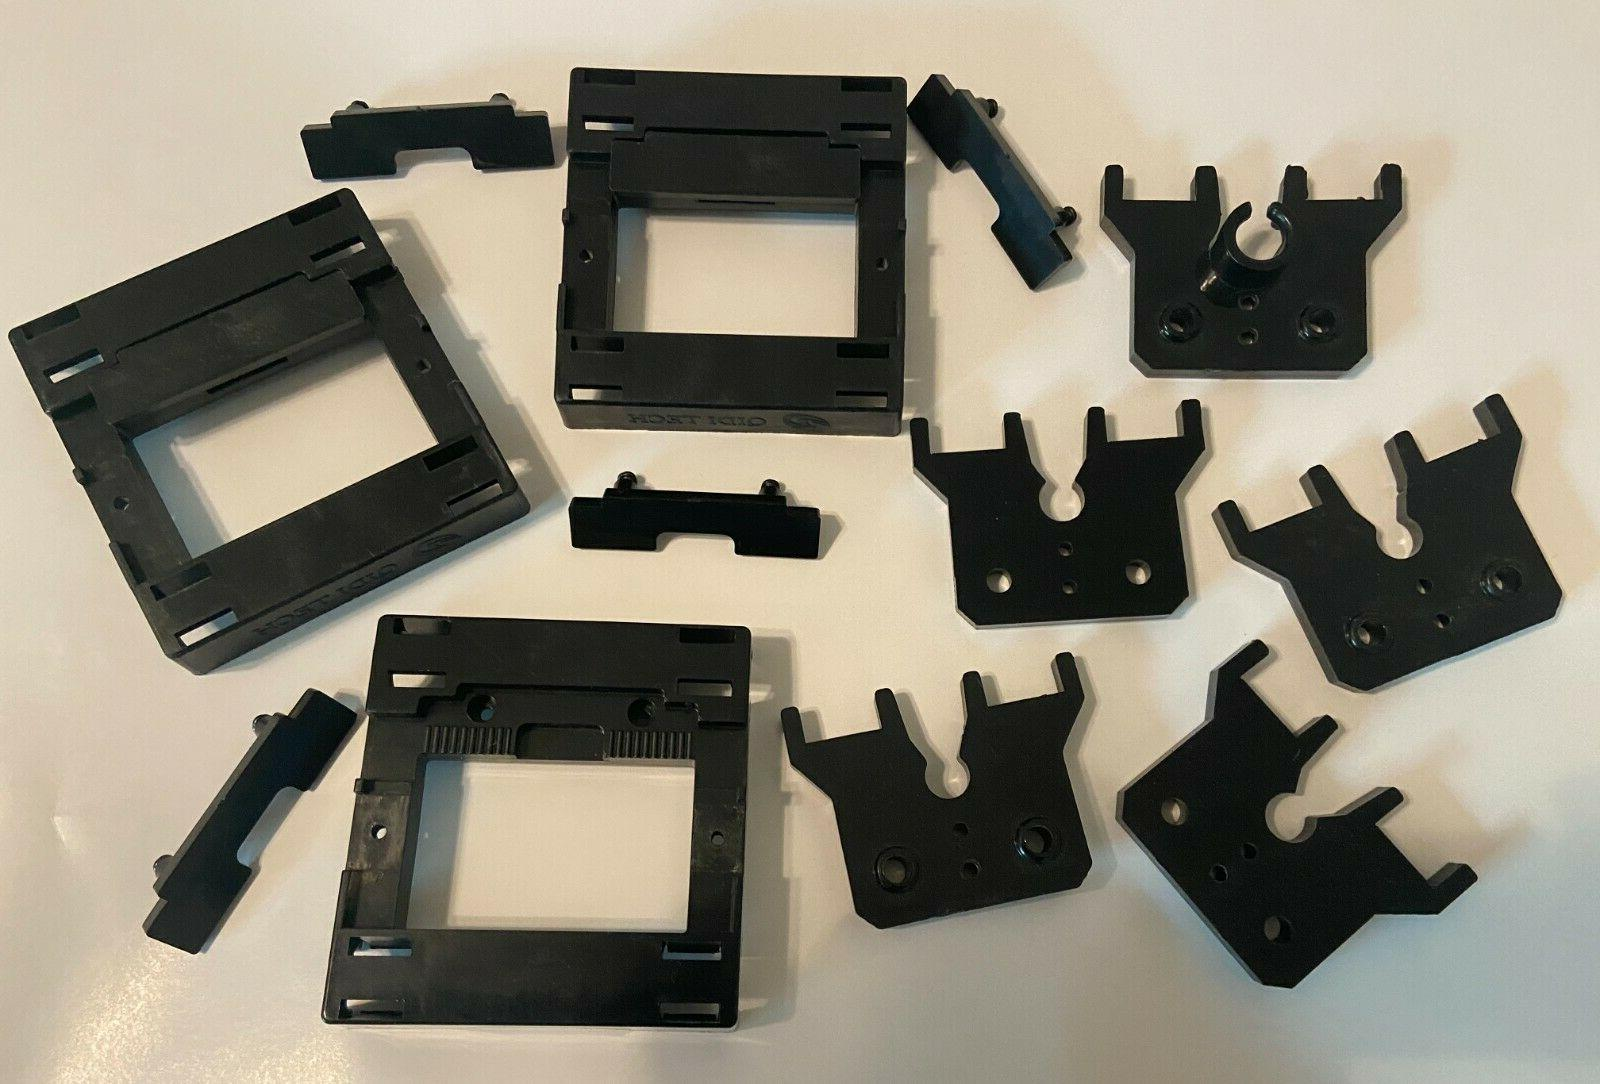 an assortment of plastic parts for qidi